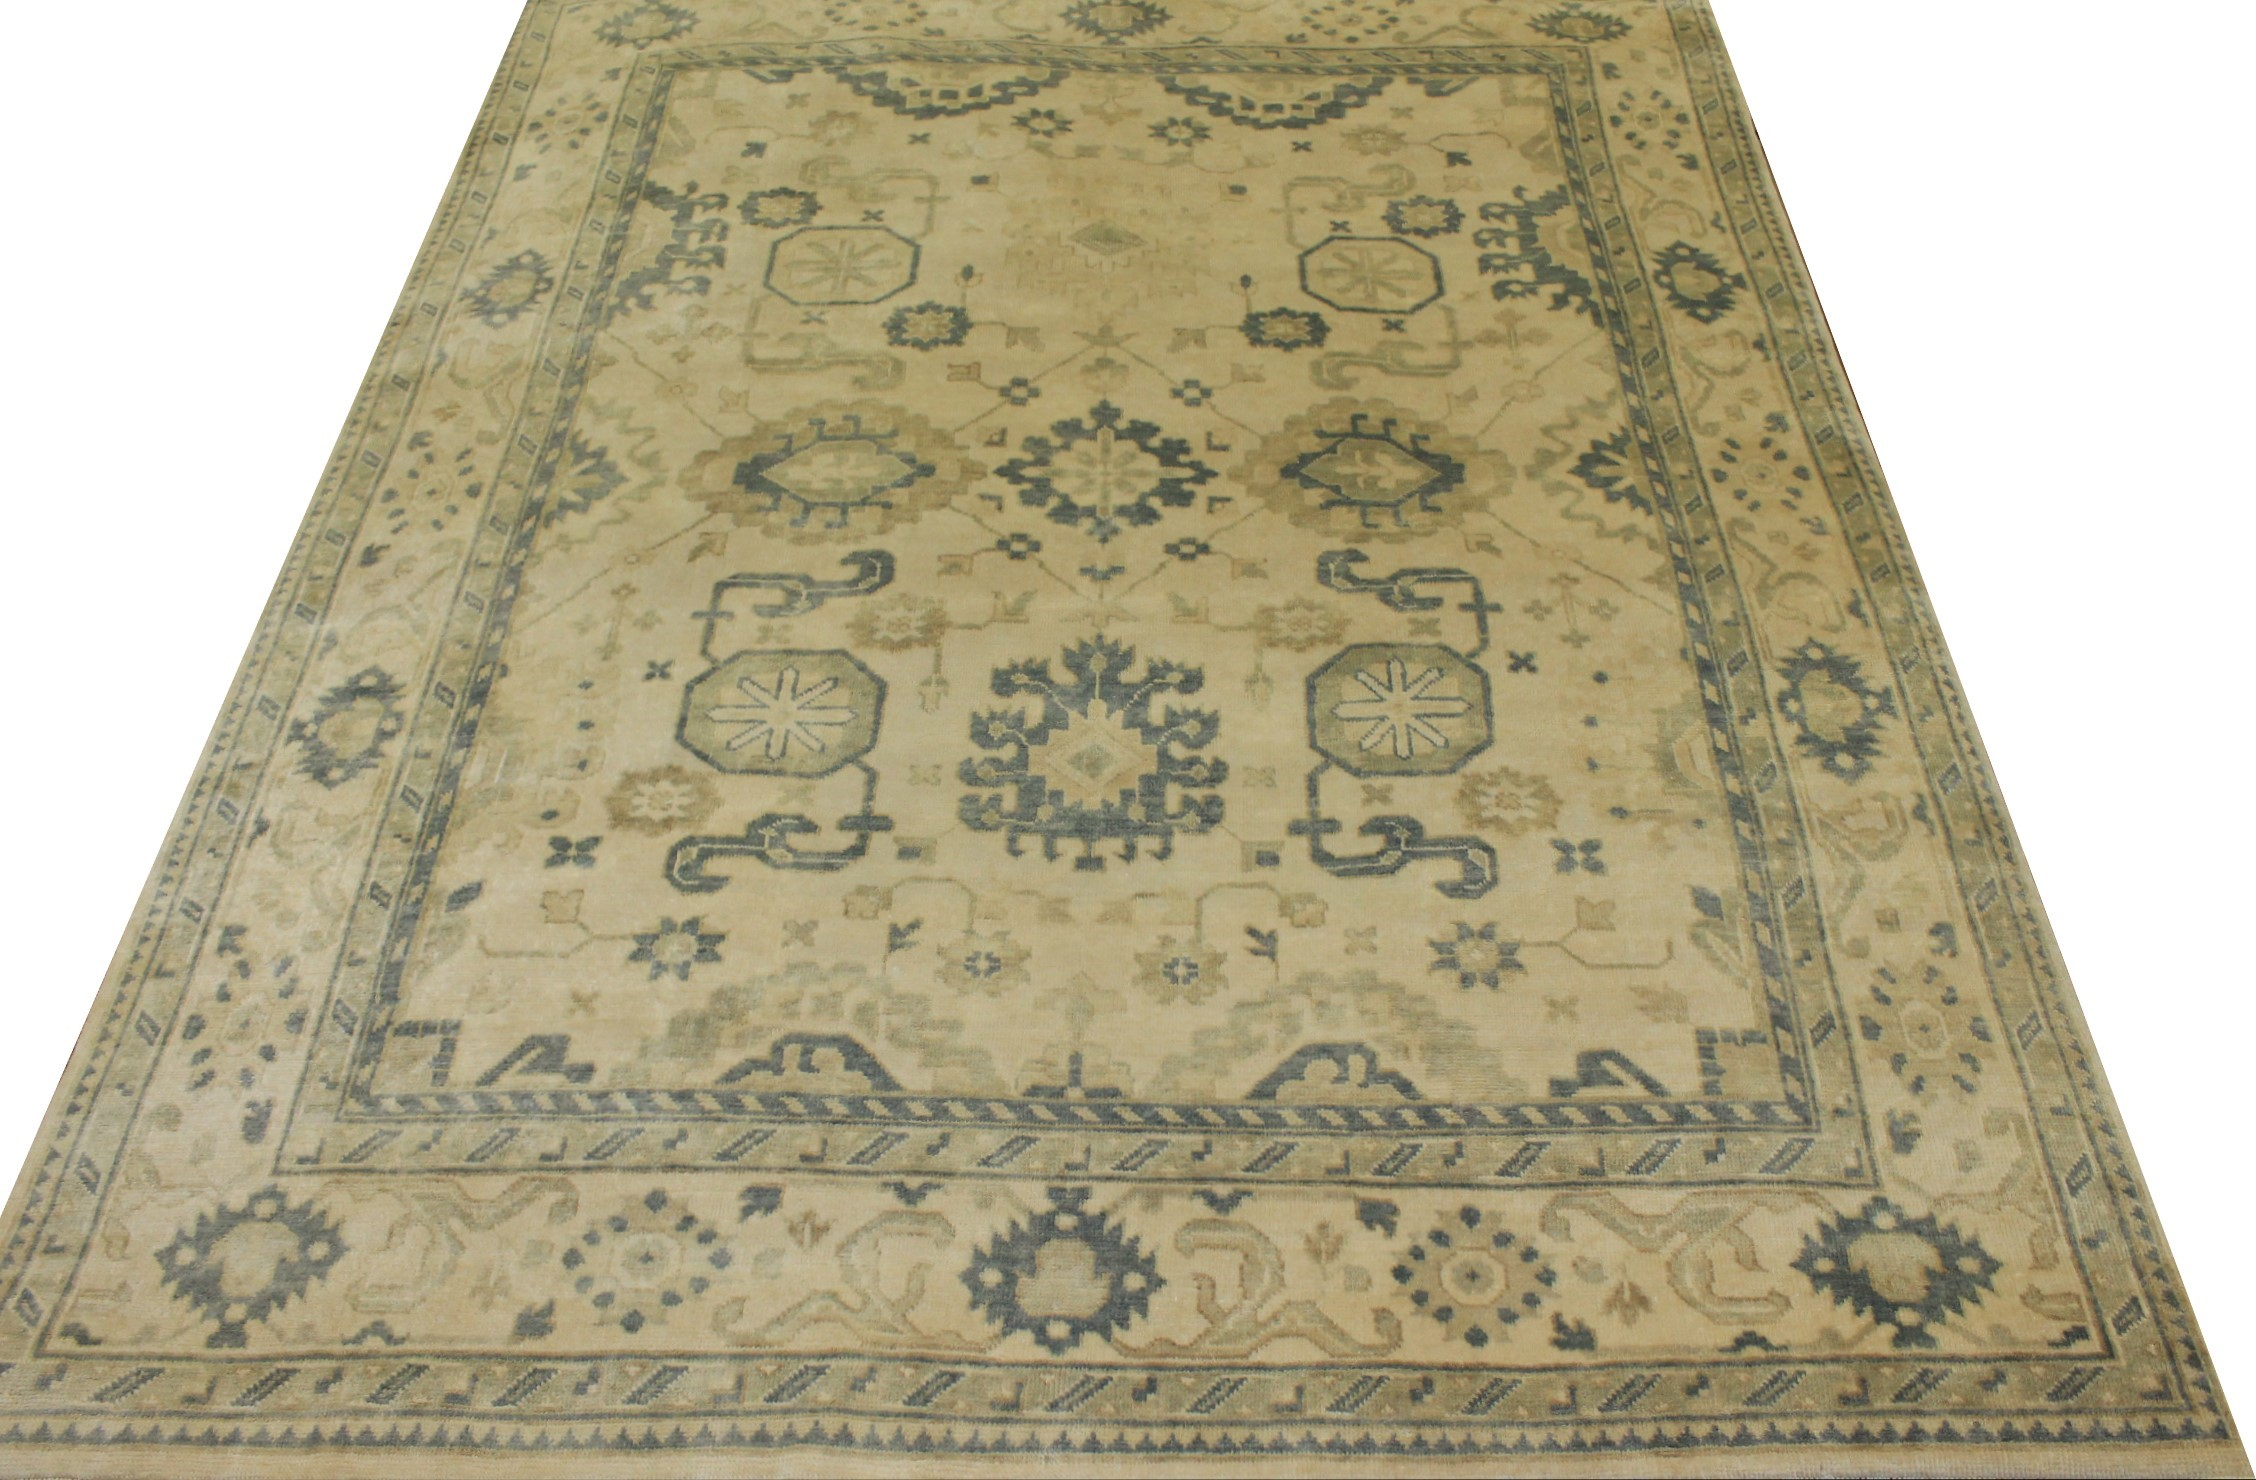 8x10 Oushak Hand Knotted Wool Area Rug - MR15800